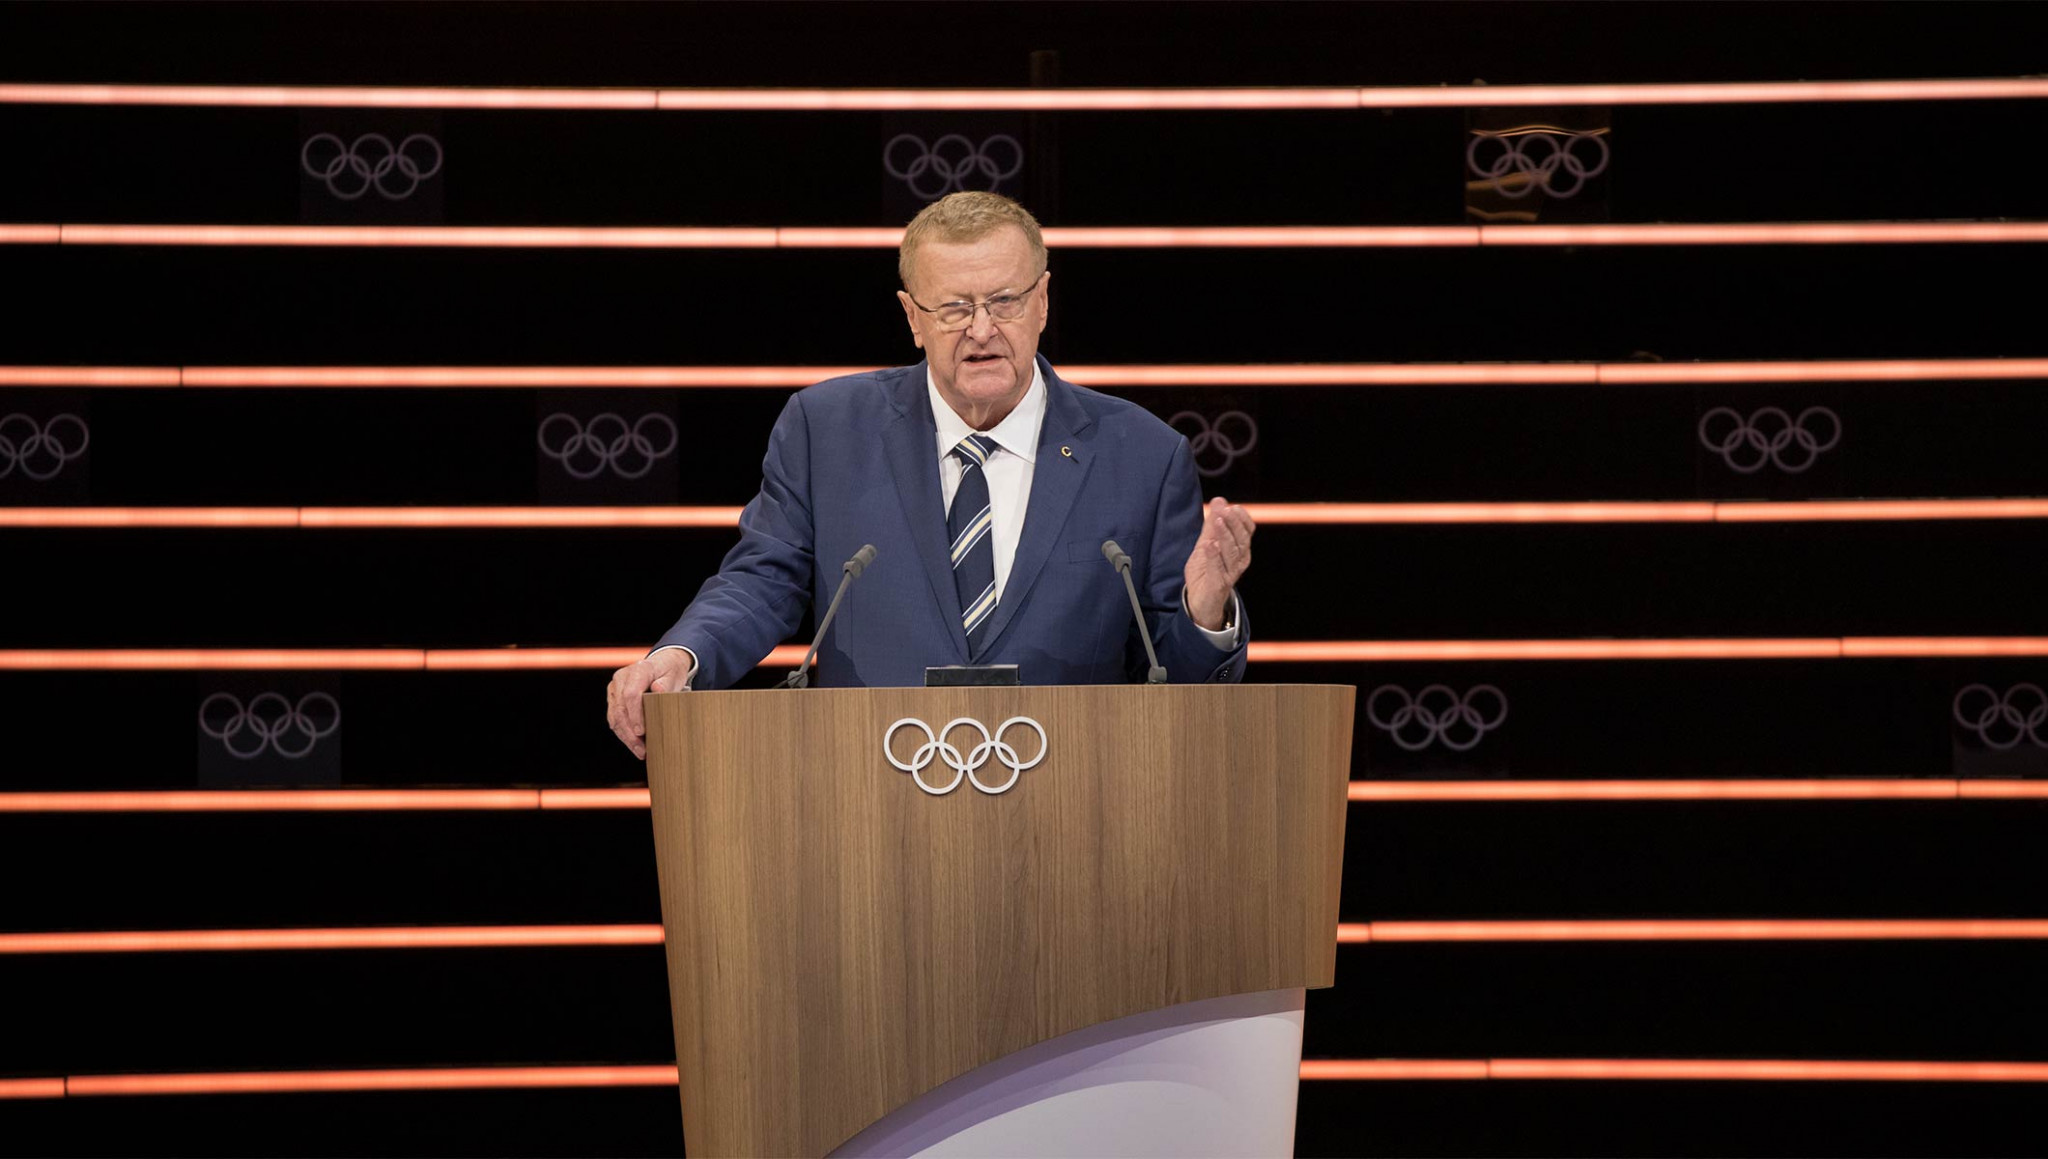 Close Thomas Bach ally John Coates did an excellent job selling the proposed new Future Host Commissions to the IOC membership, although in reality it will place greater power in a smaller amount of people ©IOC